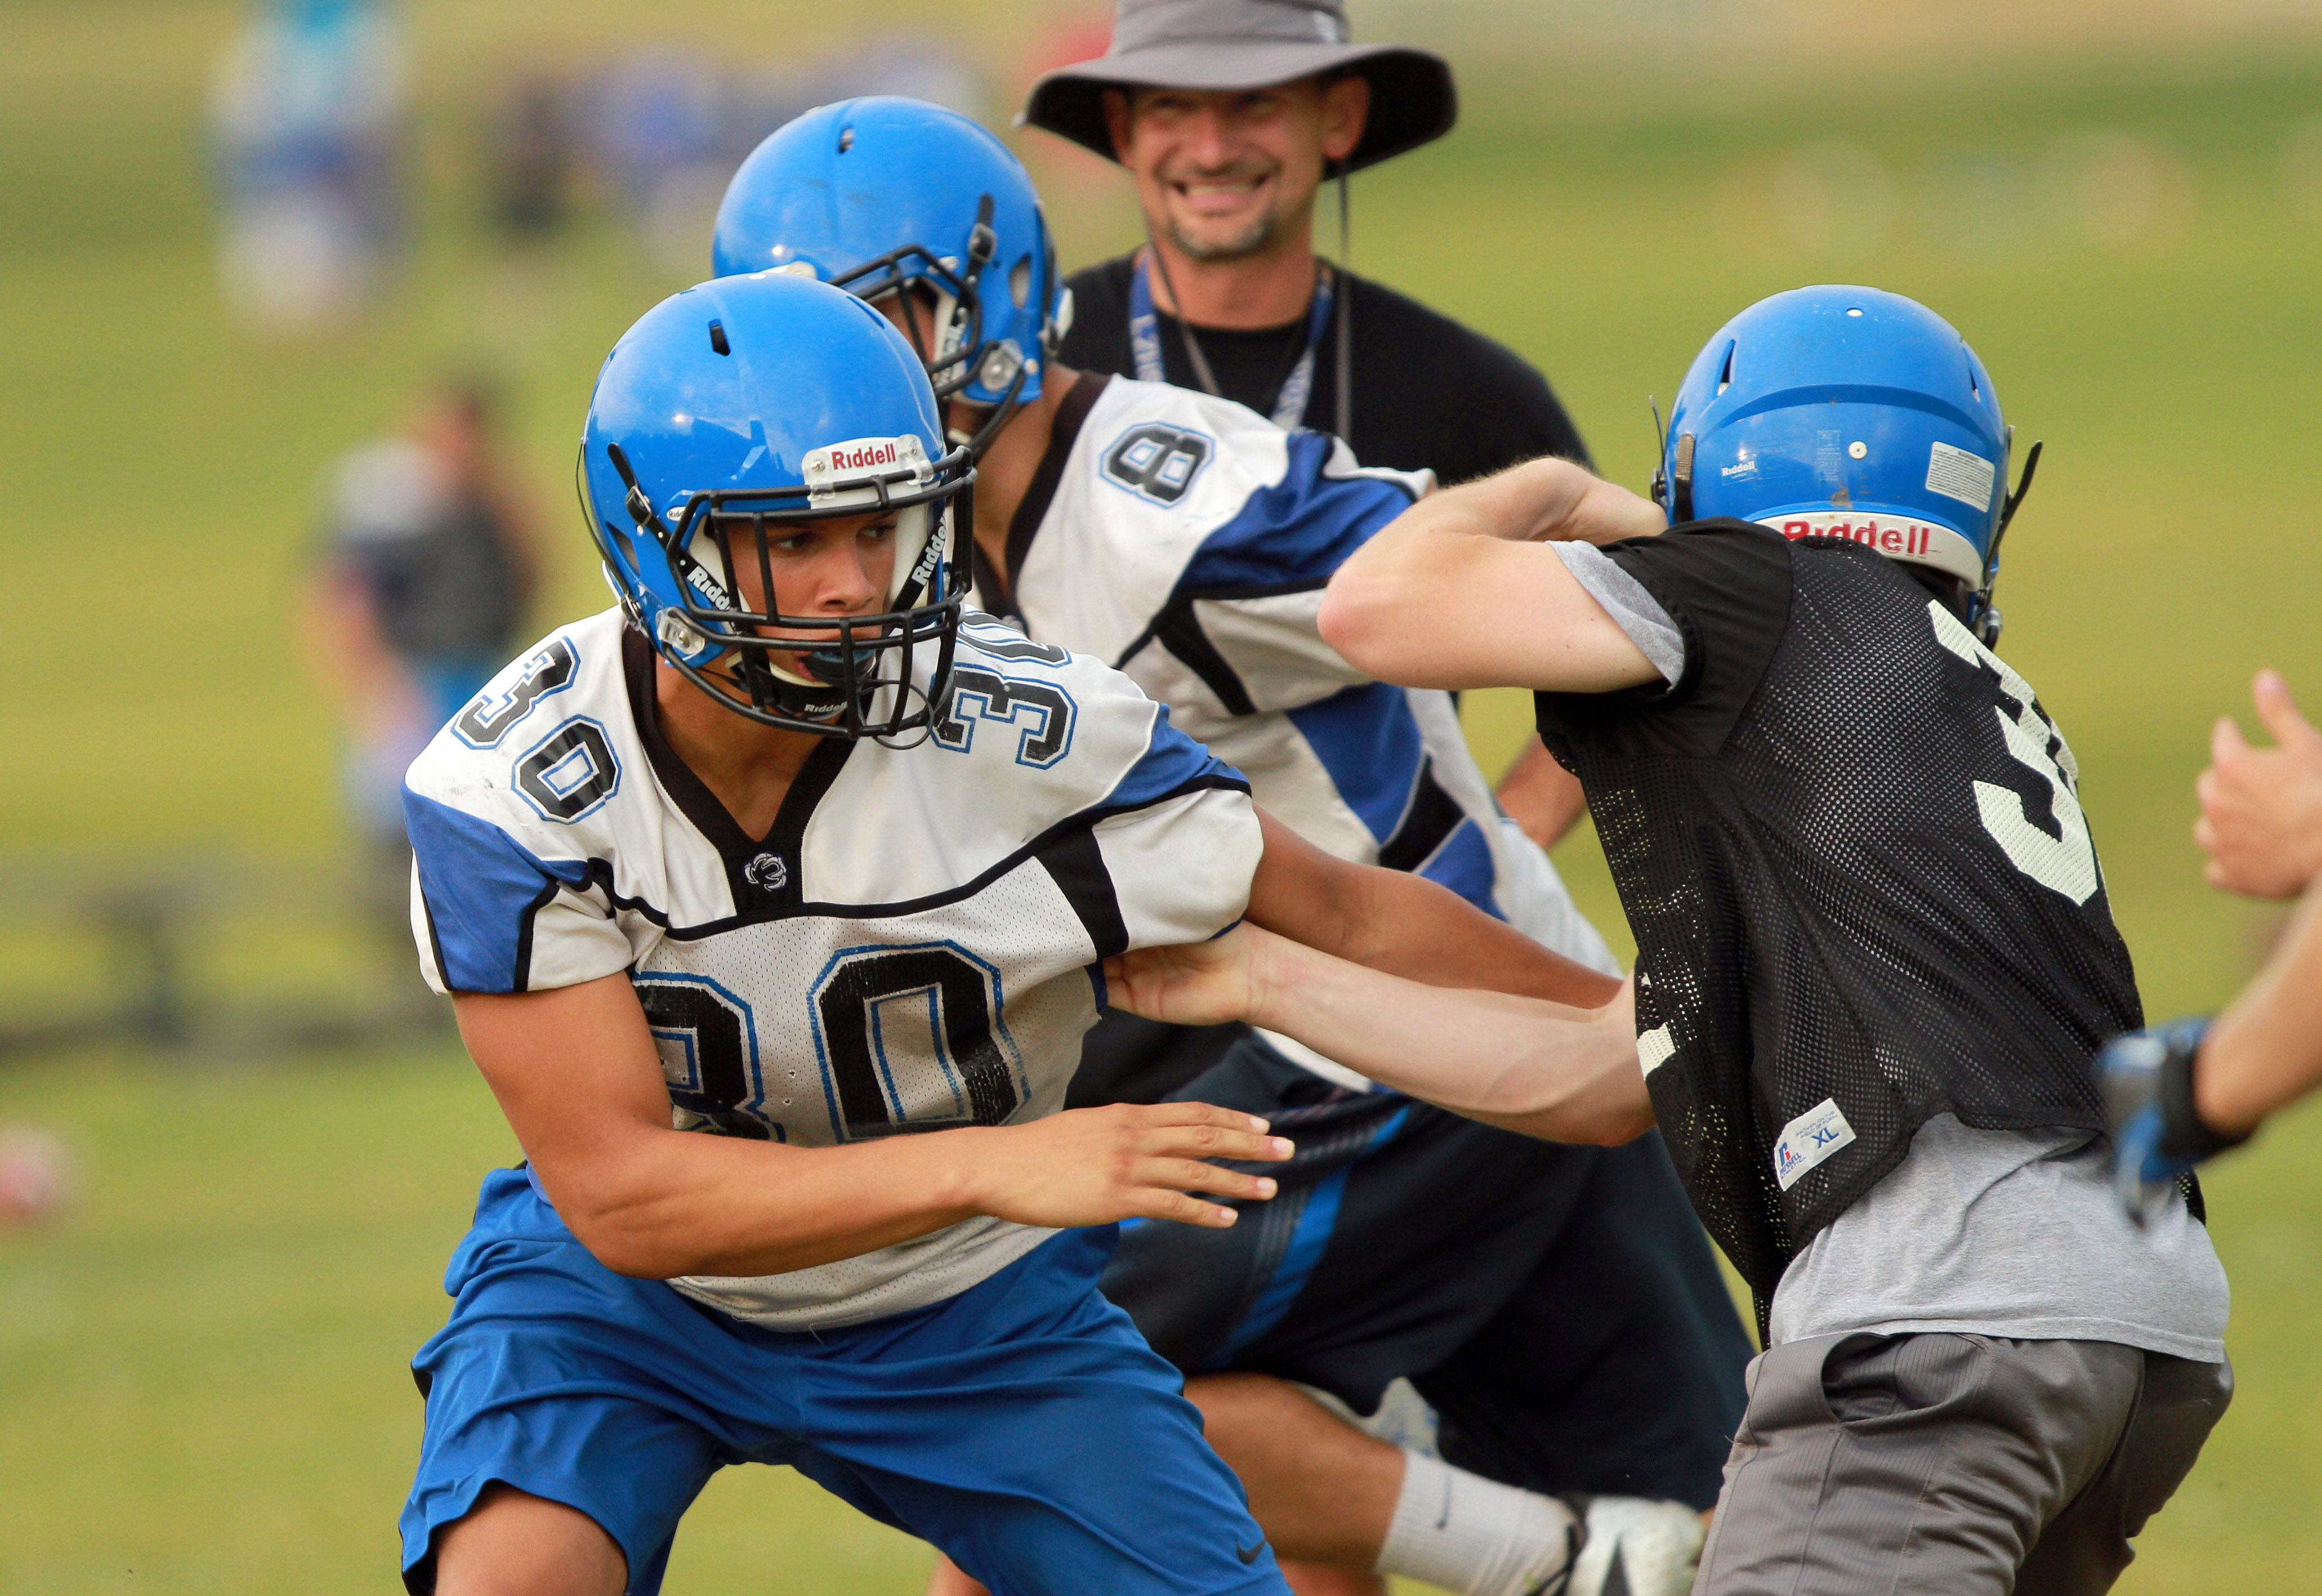 Ben Klett blocks during football practice Monday at Lake Zurich High School.